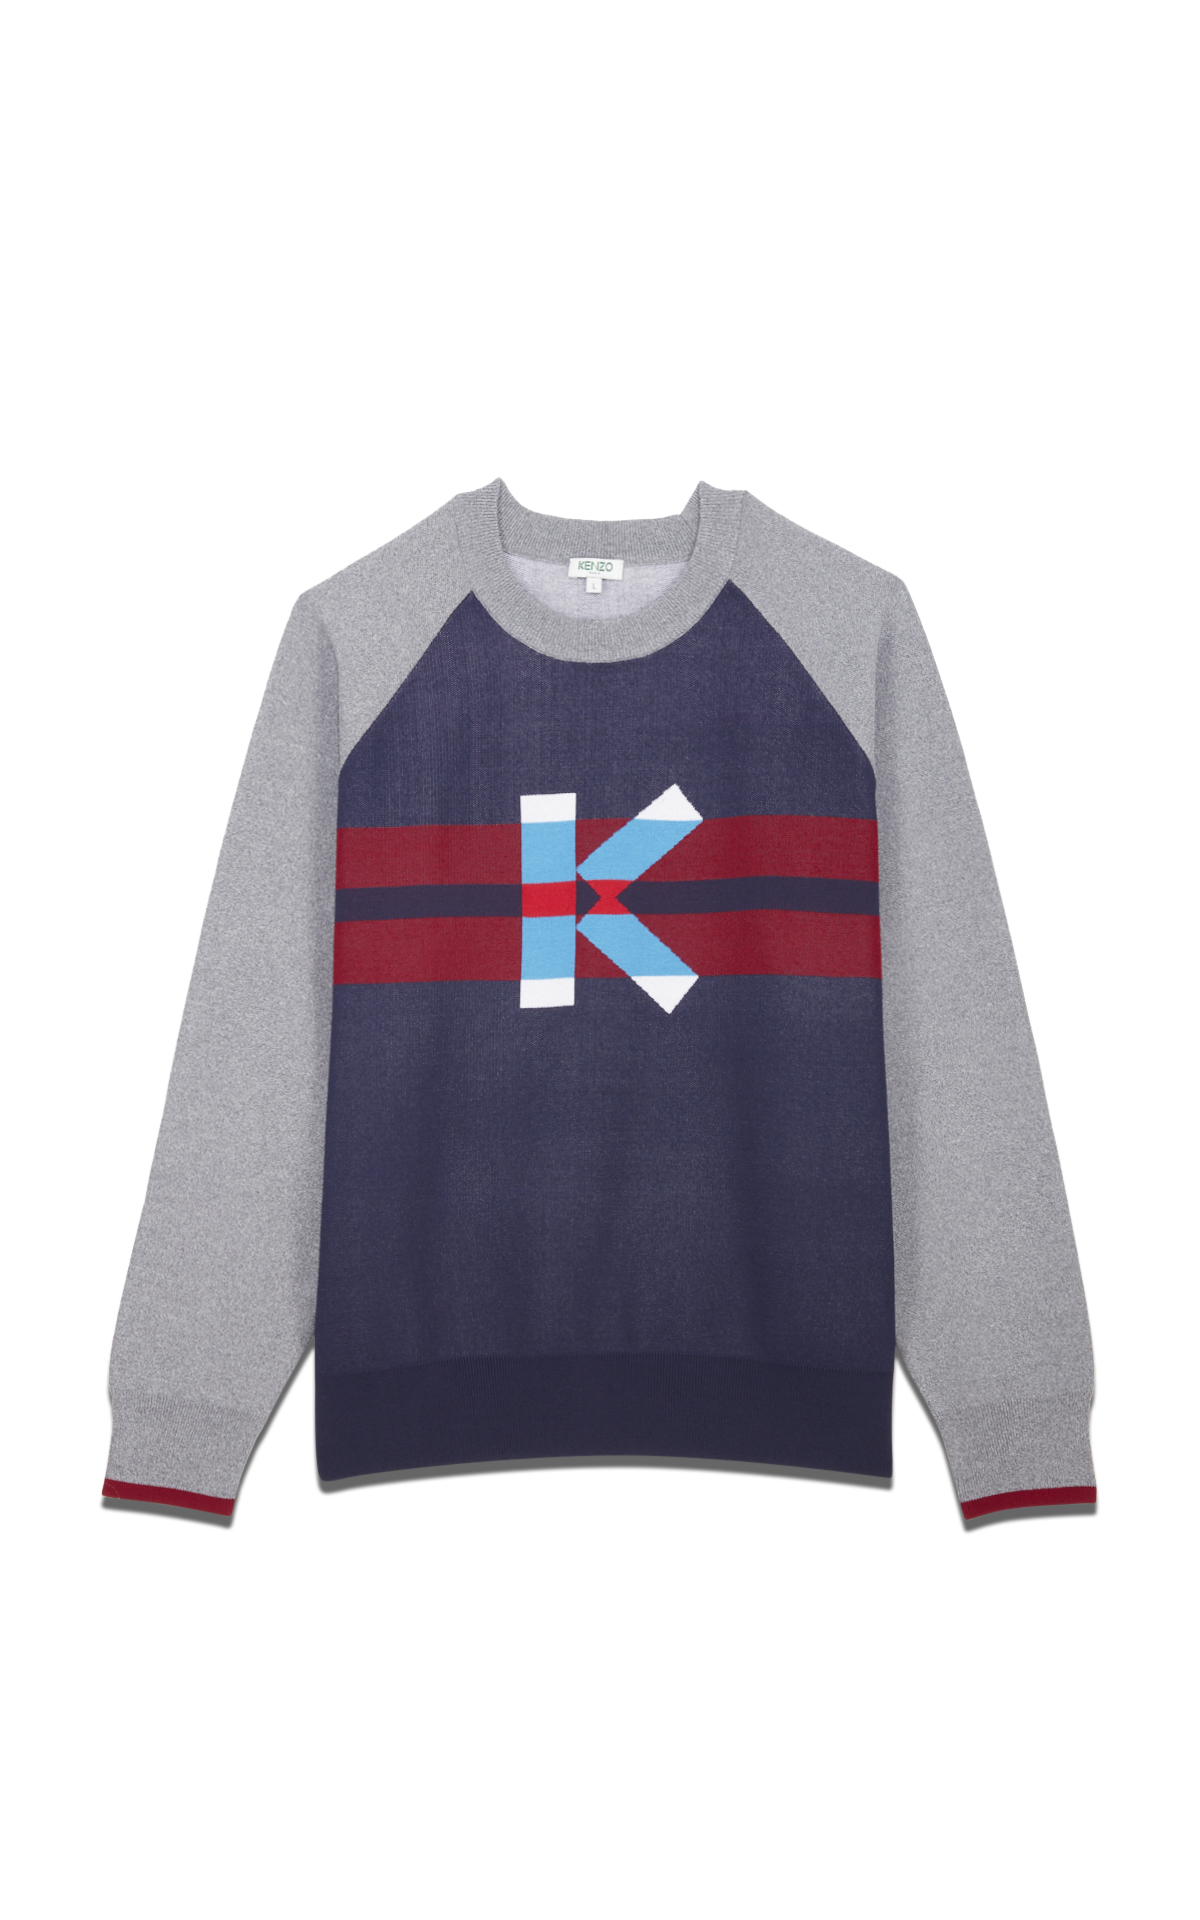 Kenzo Men's blue sweater